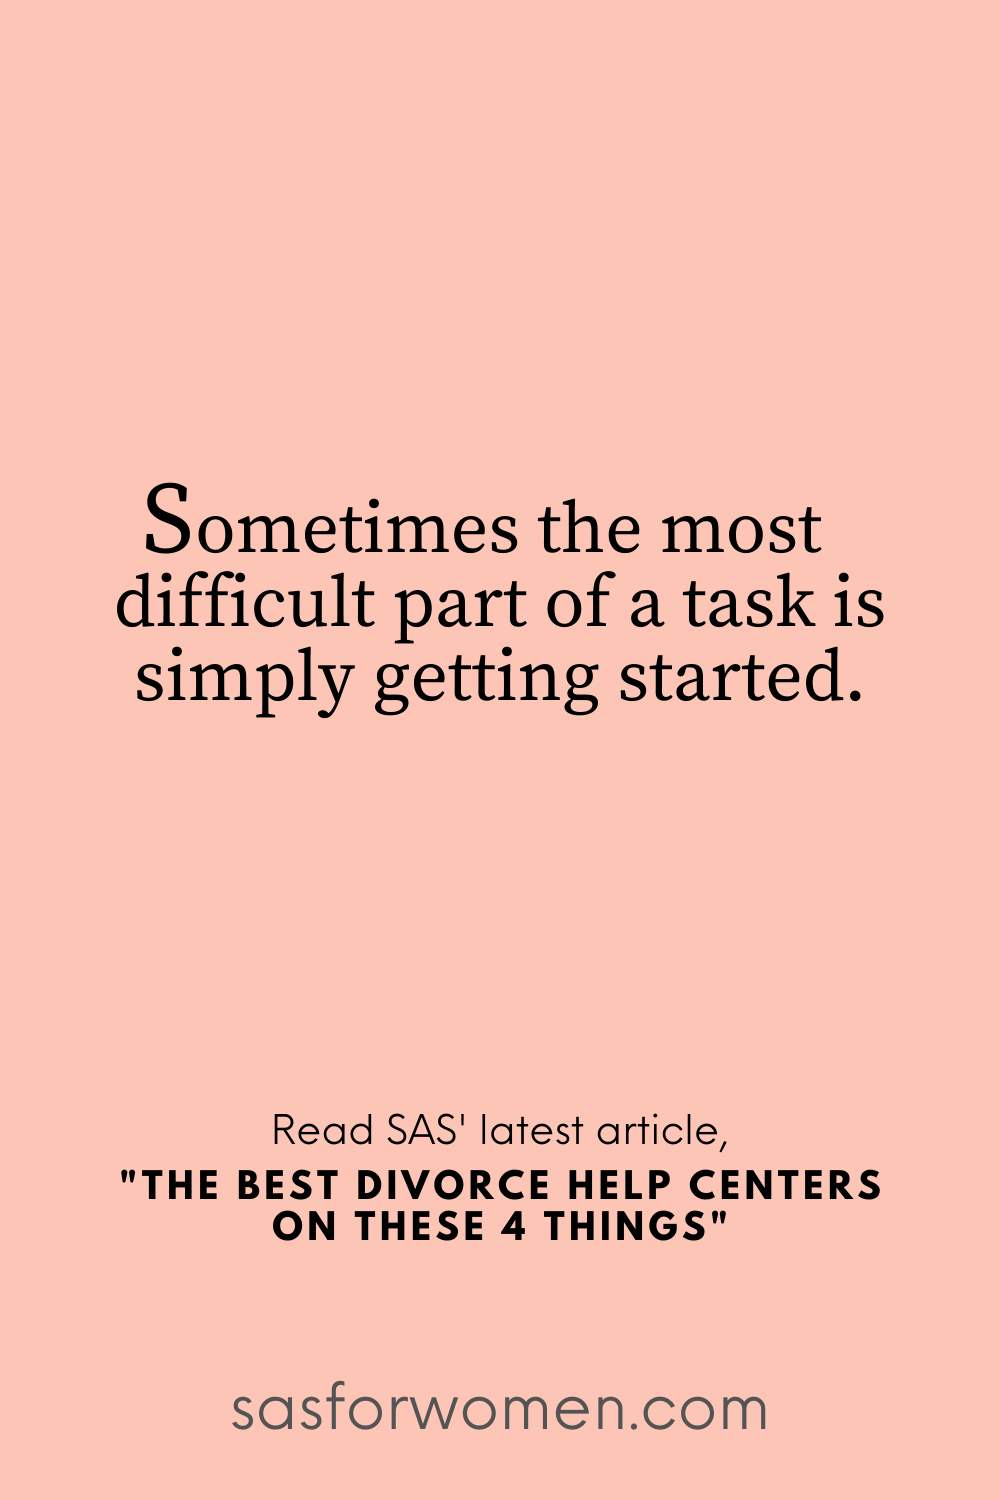 The Best Divorce Help Centers on These 4 Things